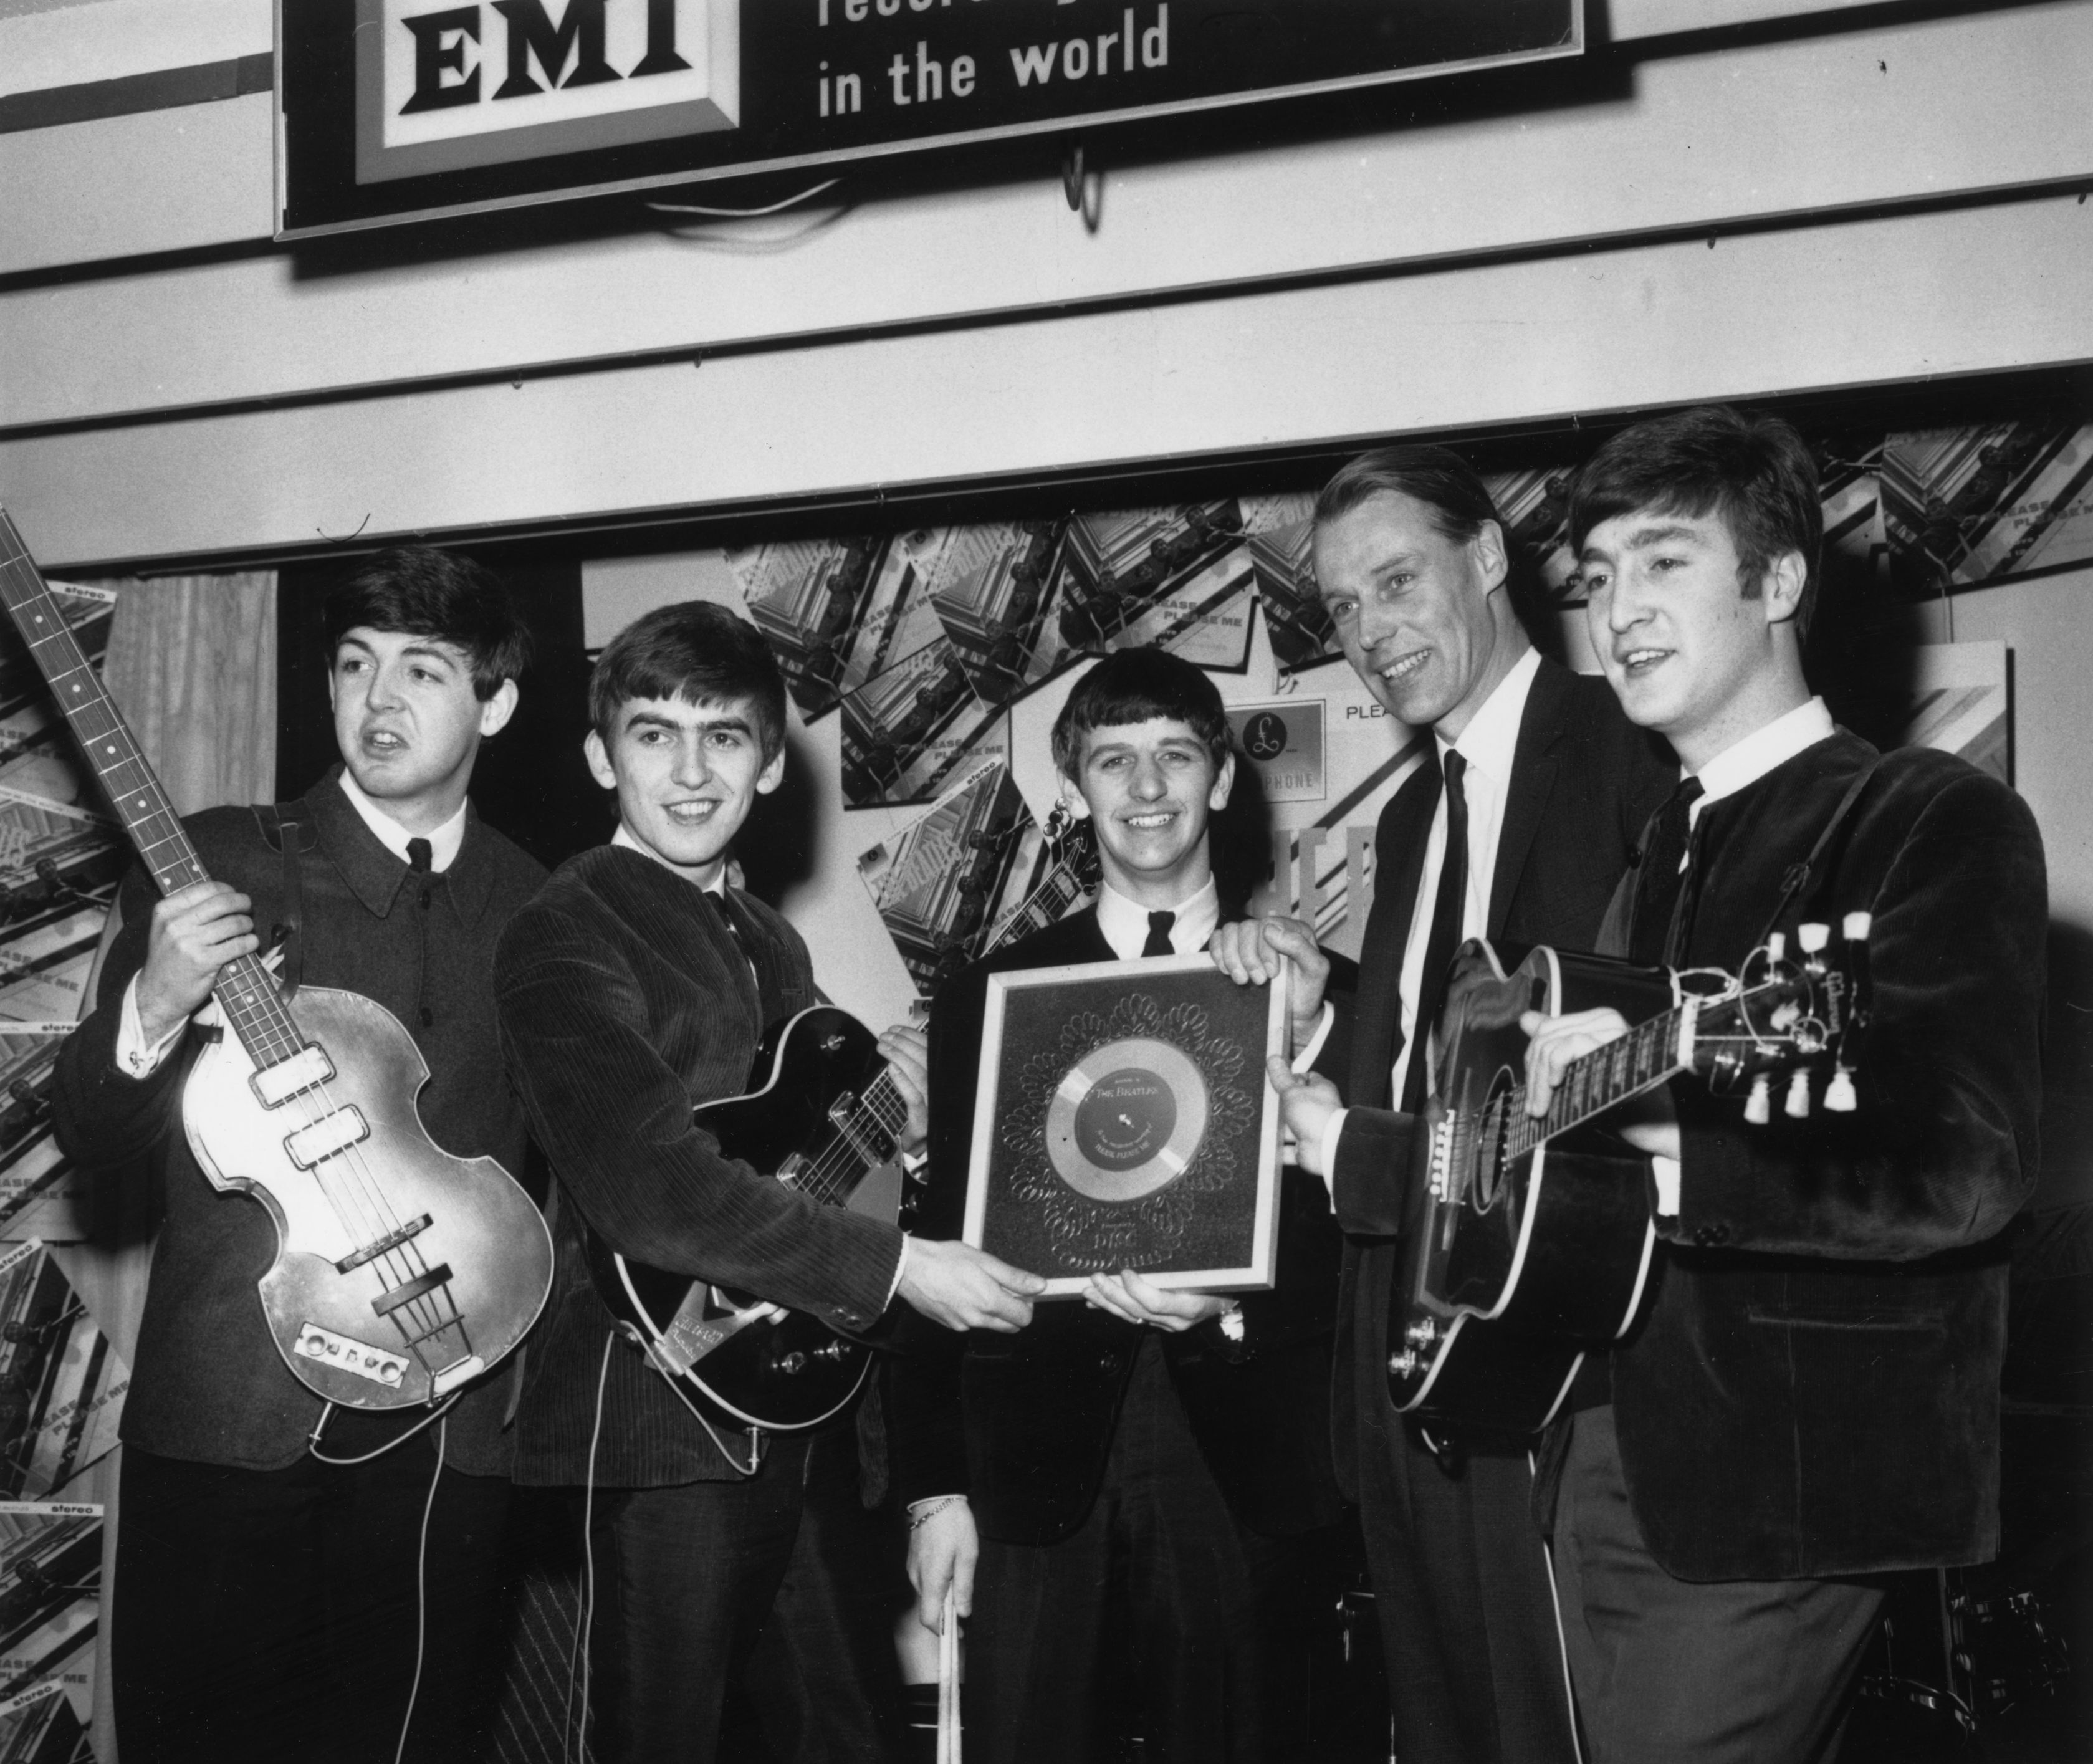 The Beatles hold their silver disc in 1963. Left to right are: Paul McCartney, George Harrison, Ringo Starr, producer George Martin of EMI and John Lennon. Photo by Chris Ware/Keystone/Getty Images